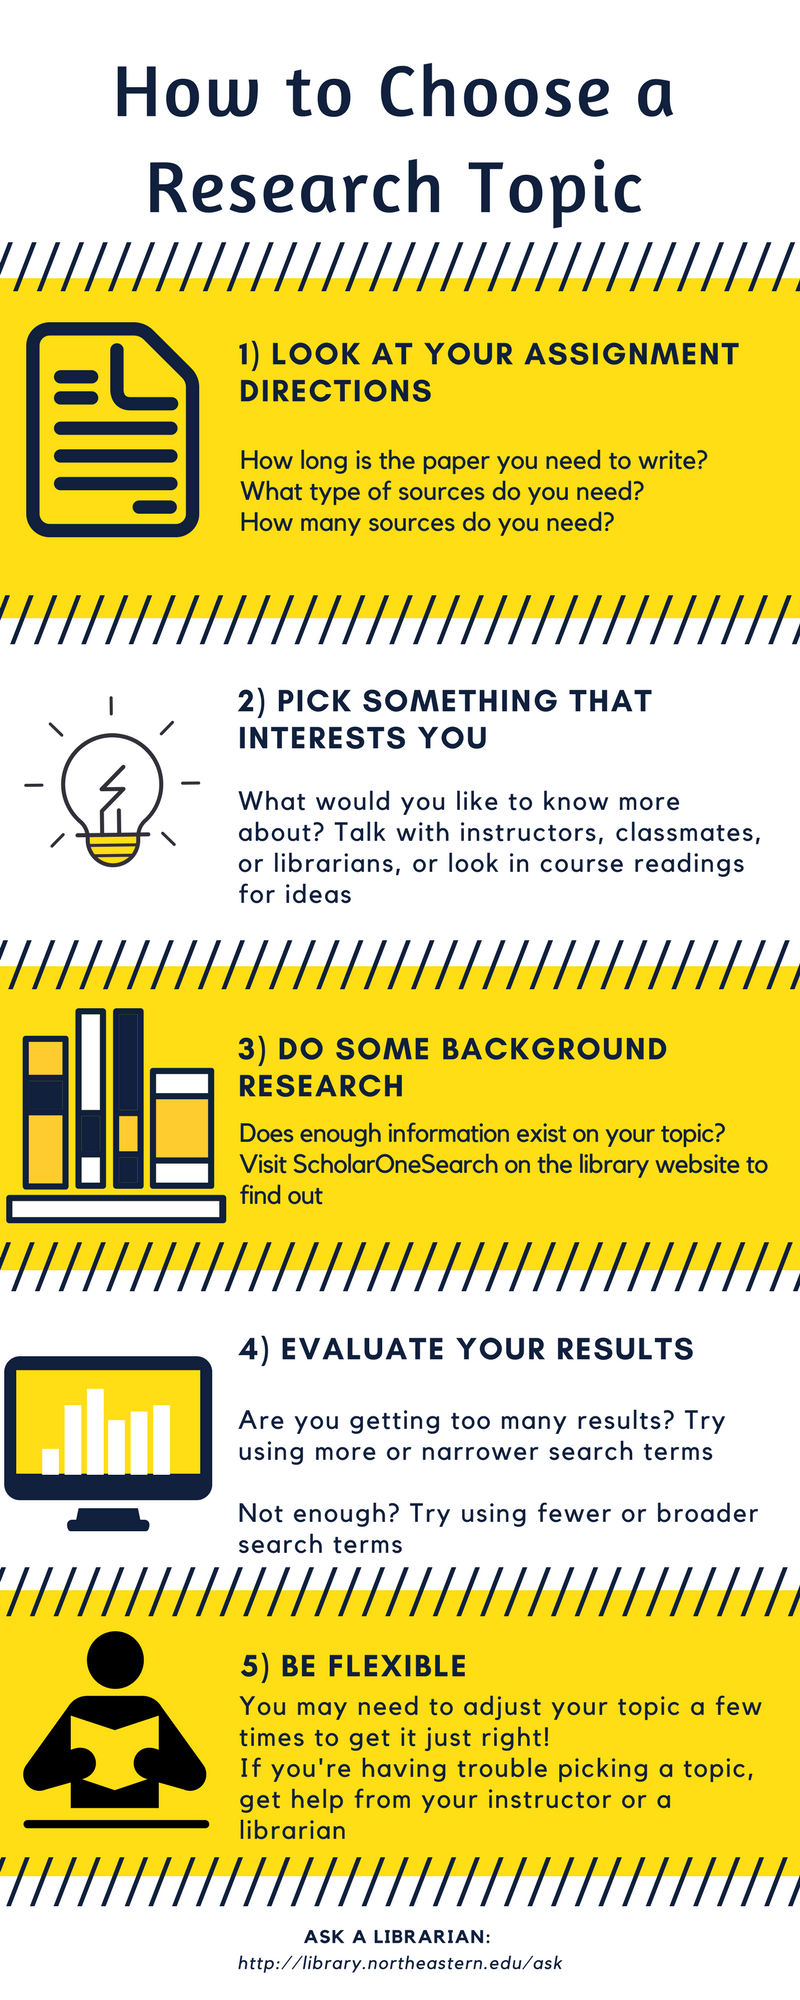 How to choose a research topic infographic